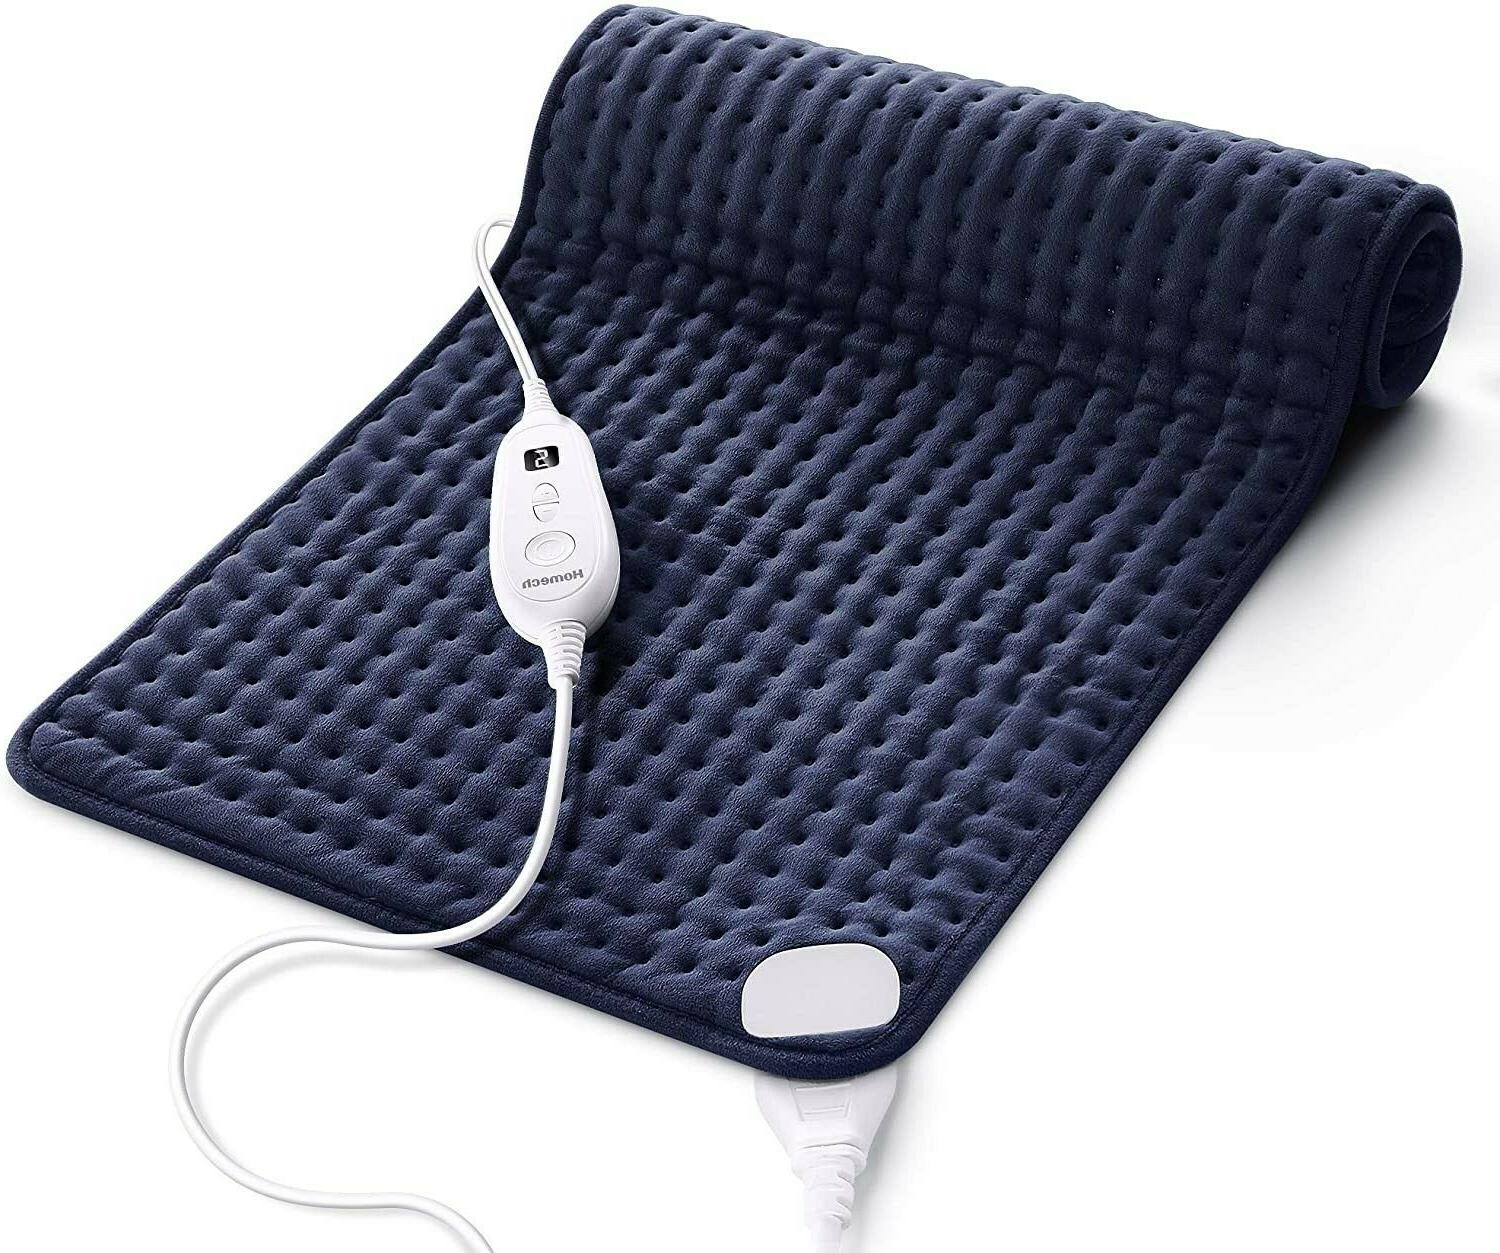 homech heating pad for back pain